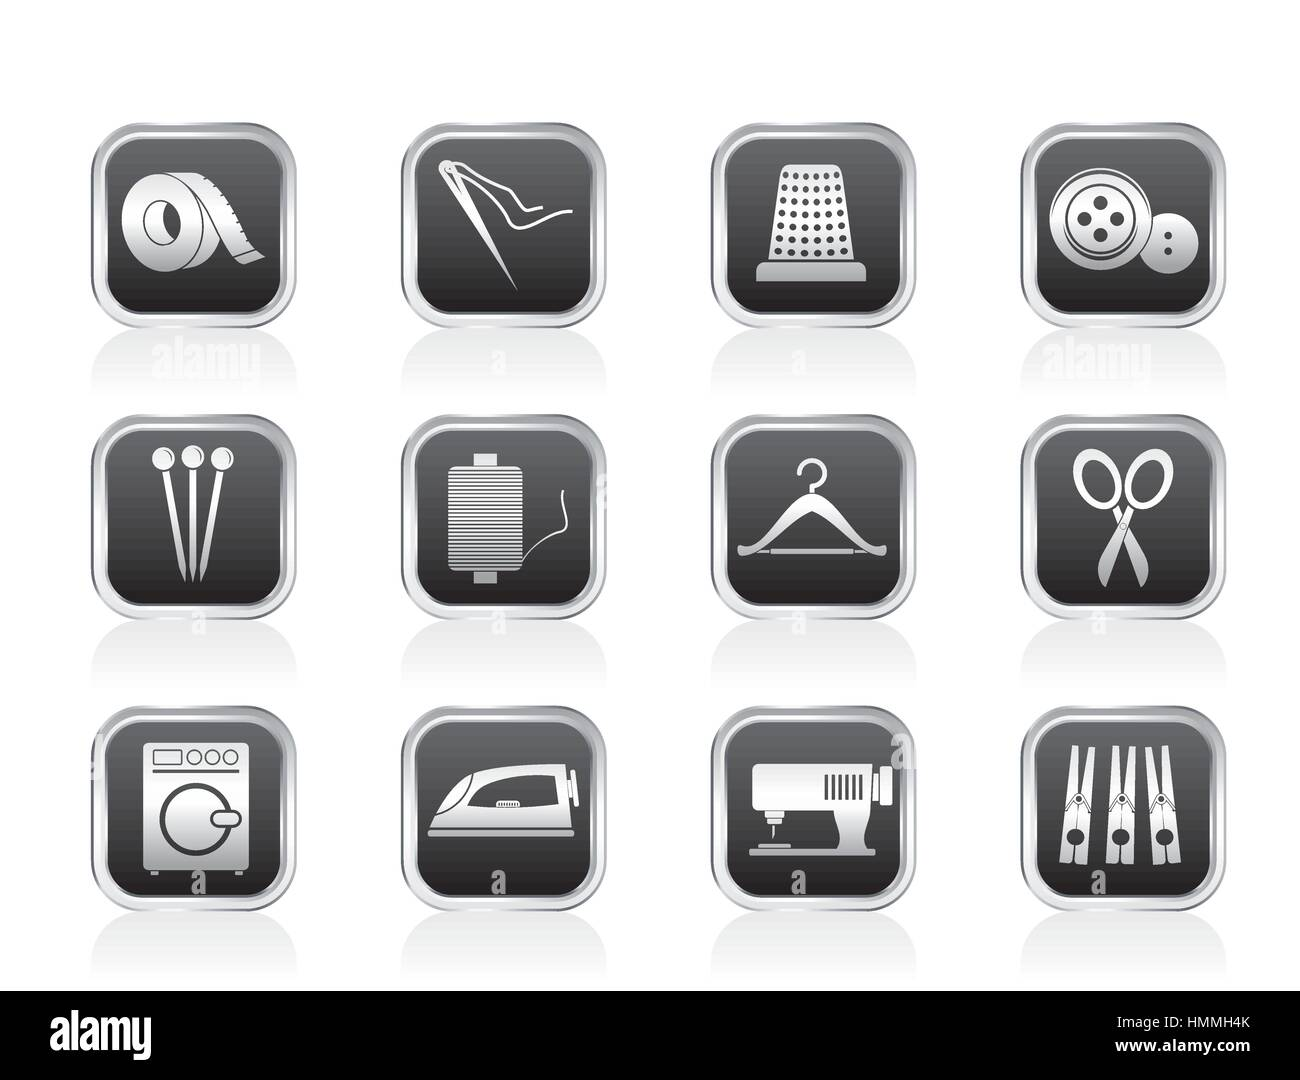 Textile objects and industry icons - Stock Image